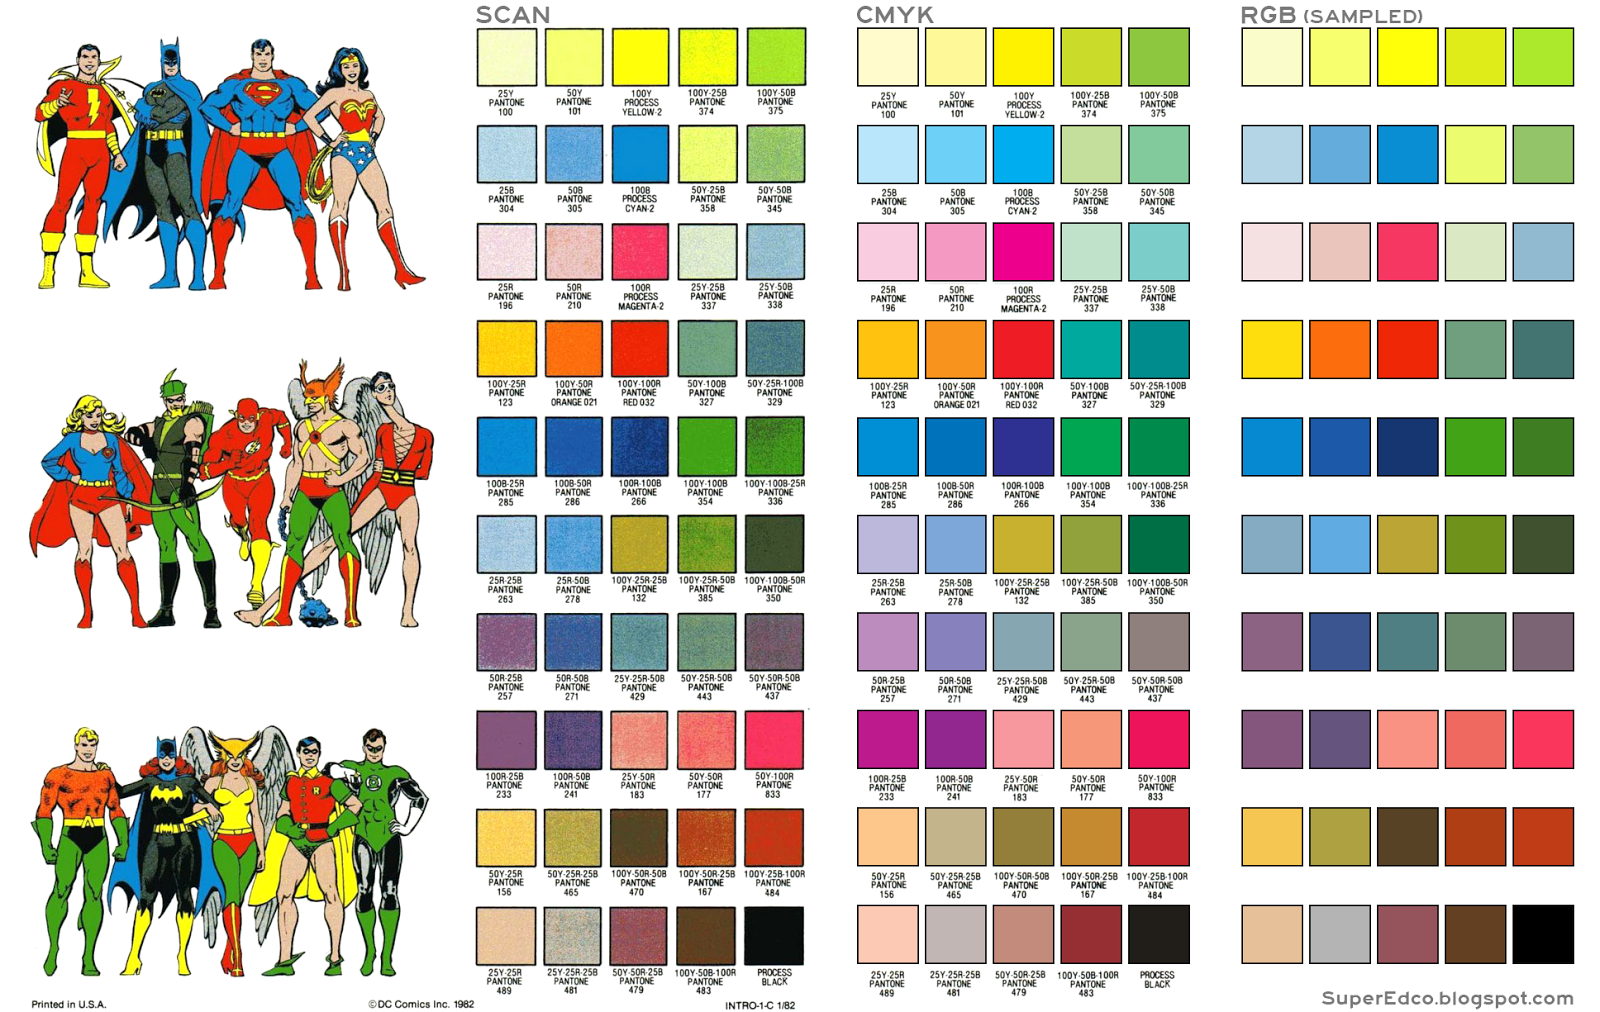 Super Edco: DC Color Guide with CMYK + RGB